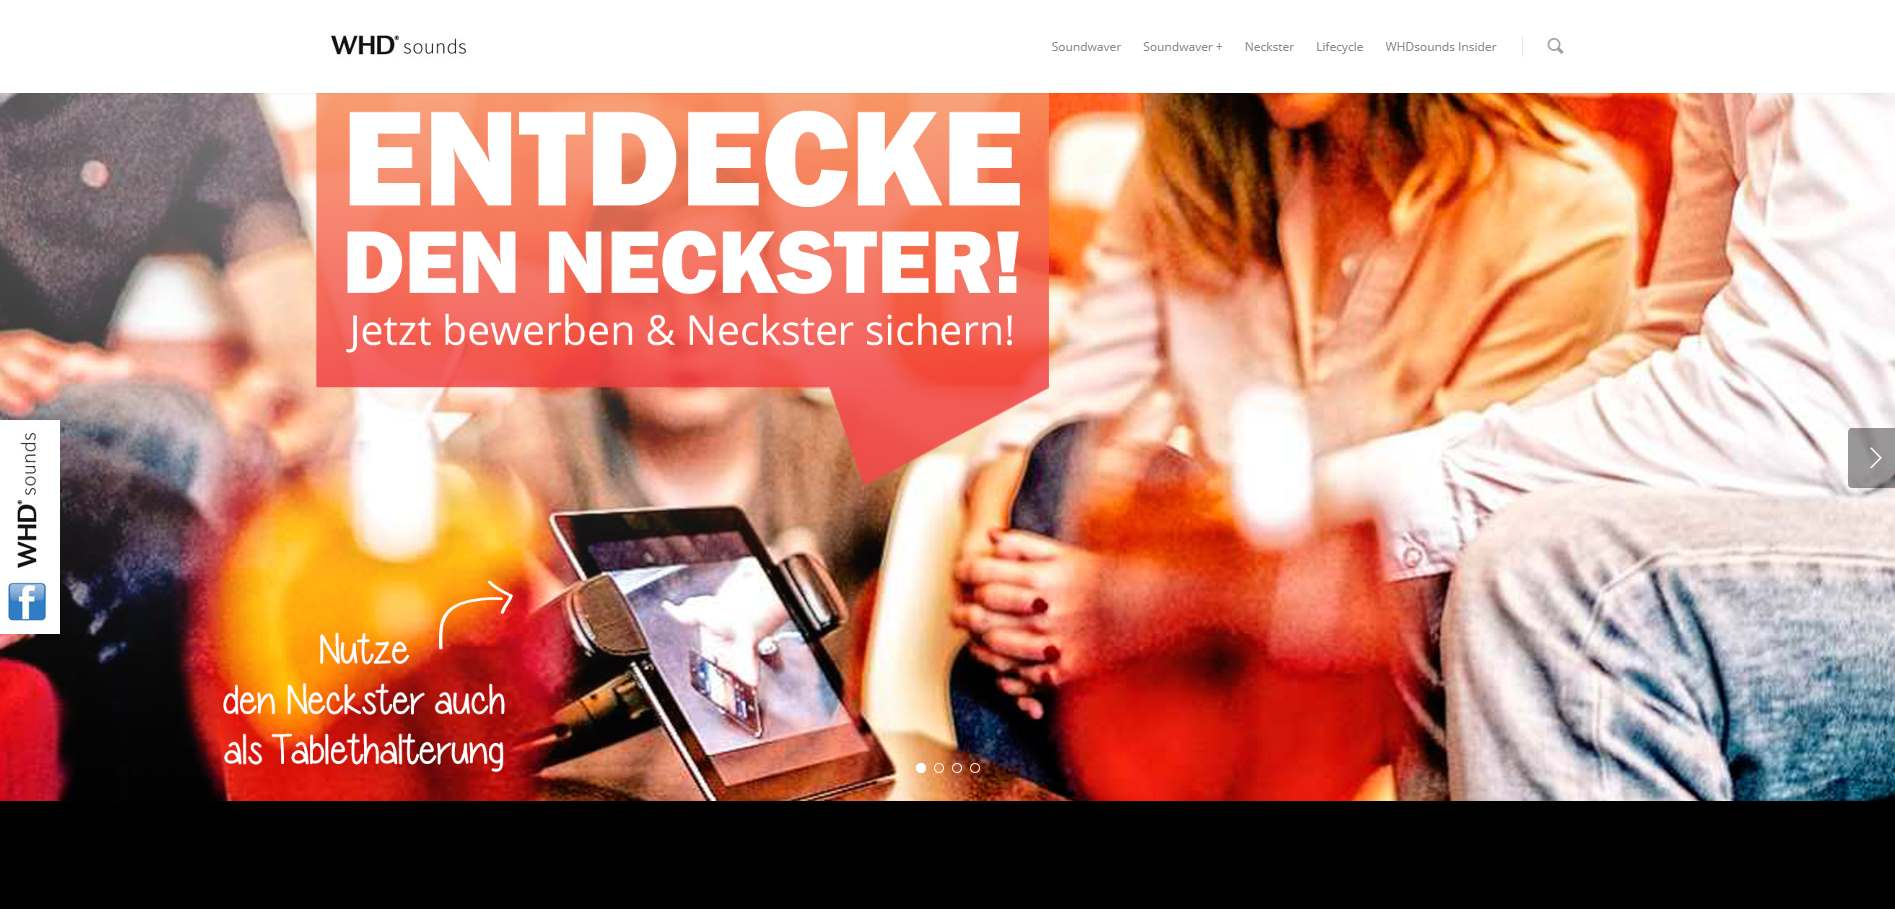 2014-07-11_whd-Neckster